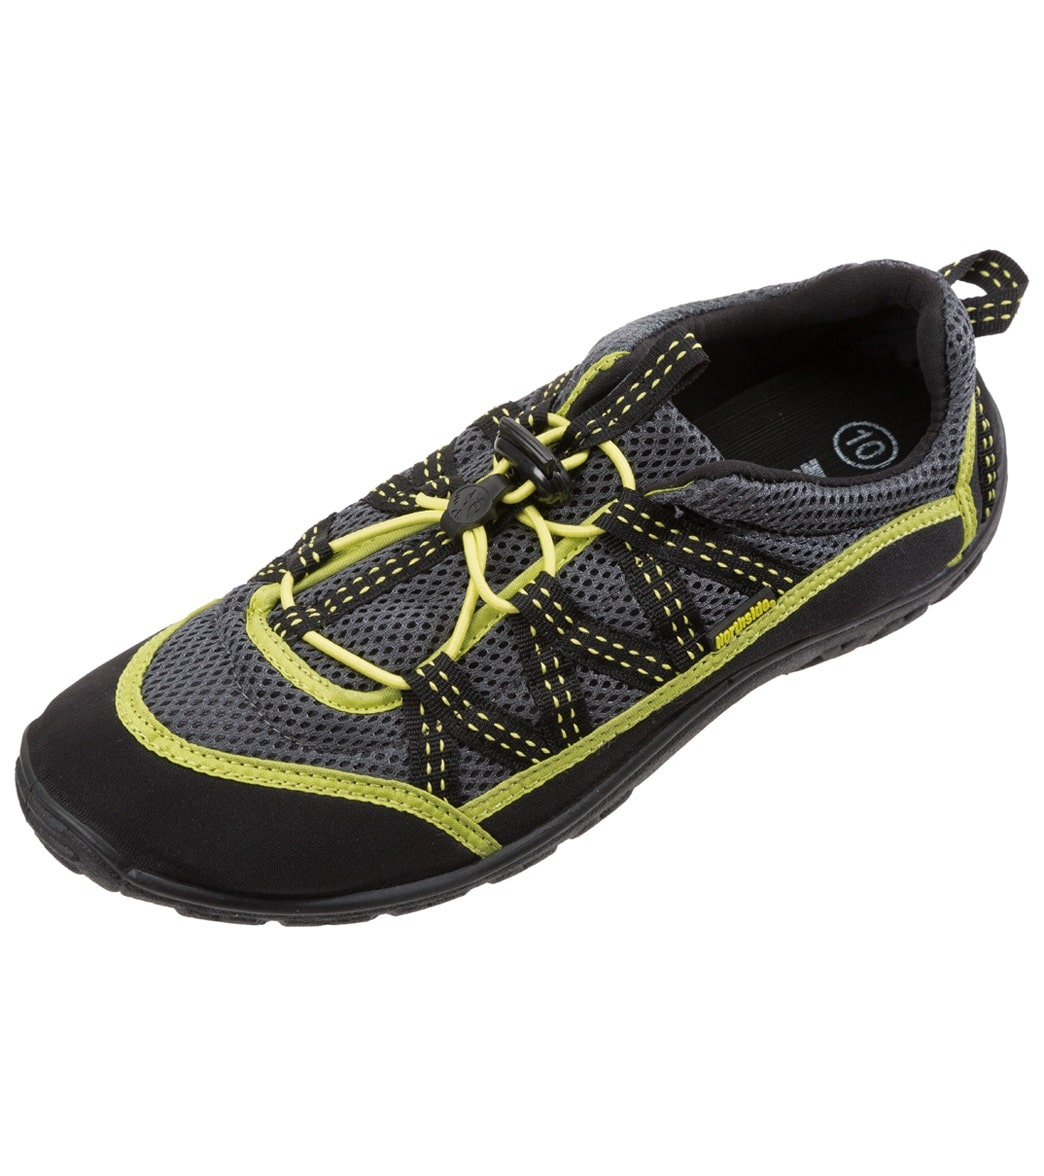 Northside Men's Brille II Water Shoe at SwimOutlet.com